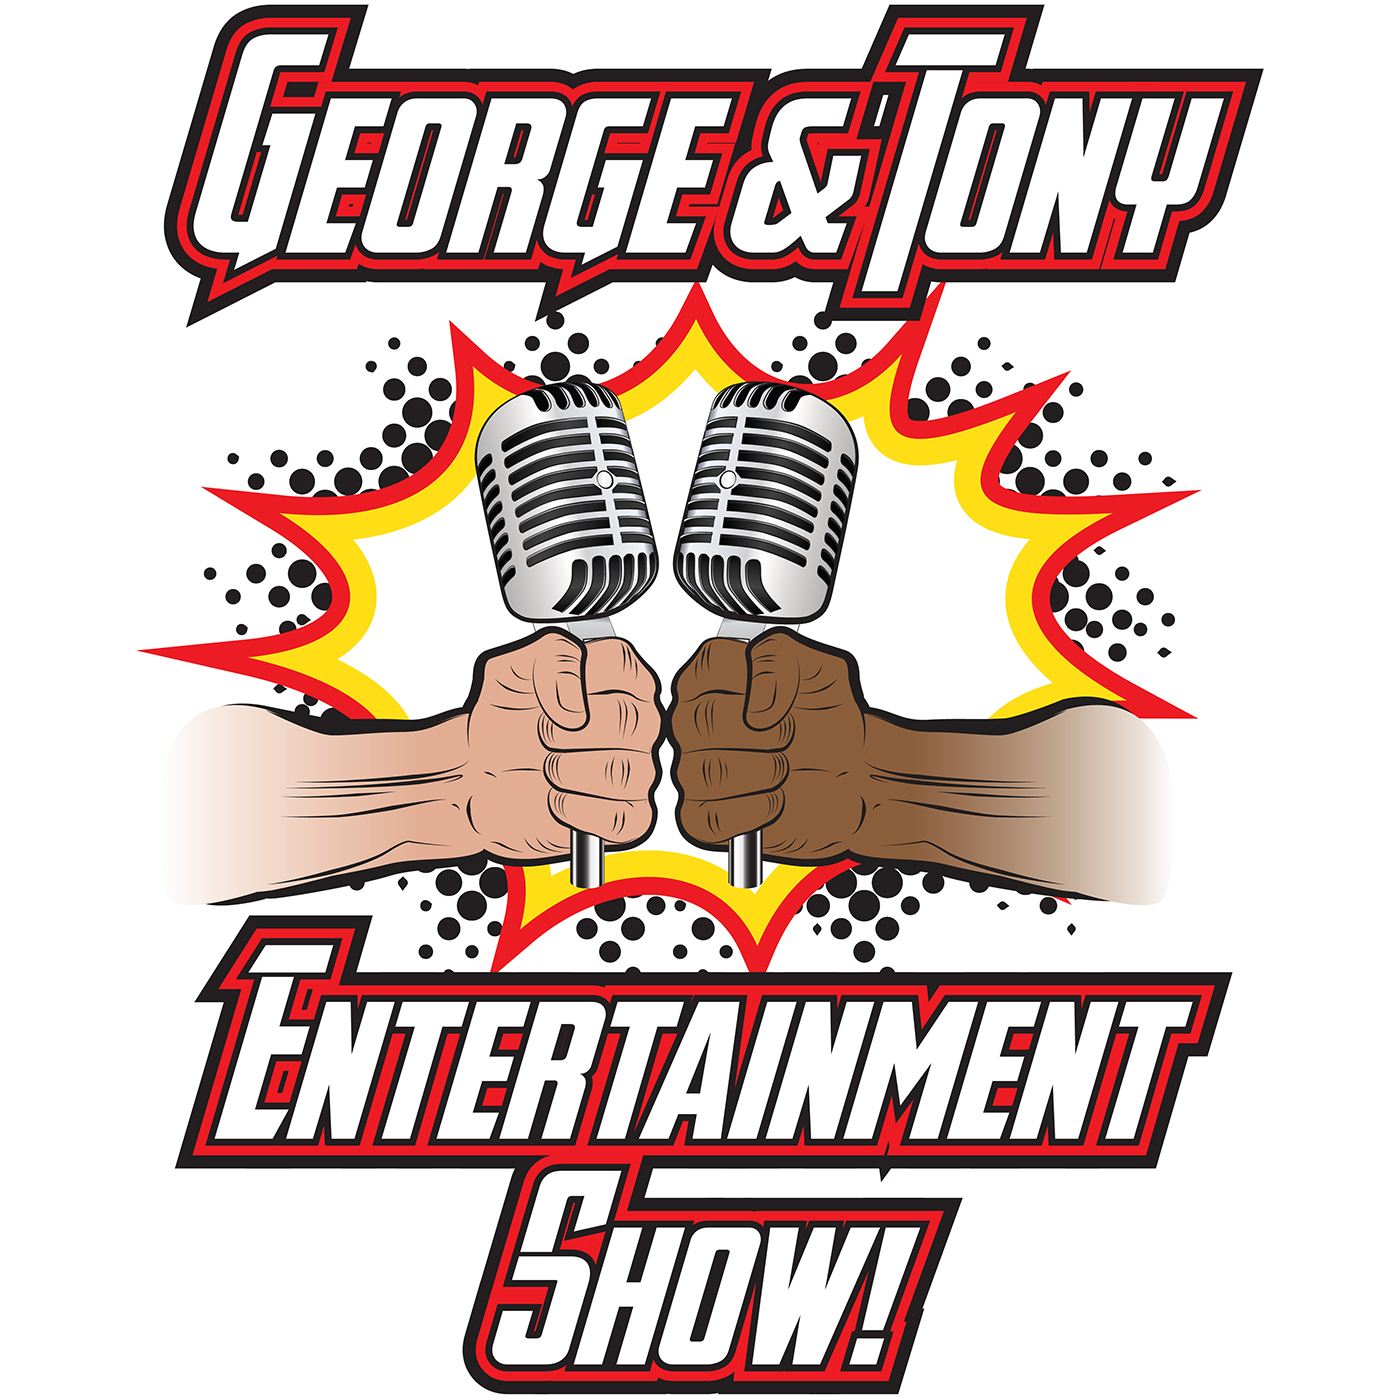 George and Tony Entertainment Show #76